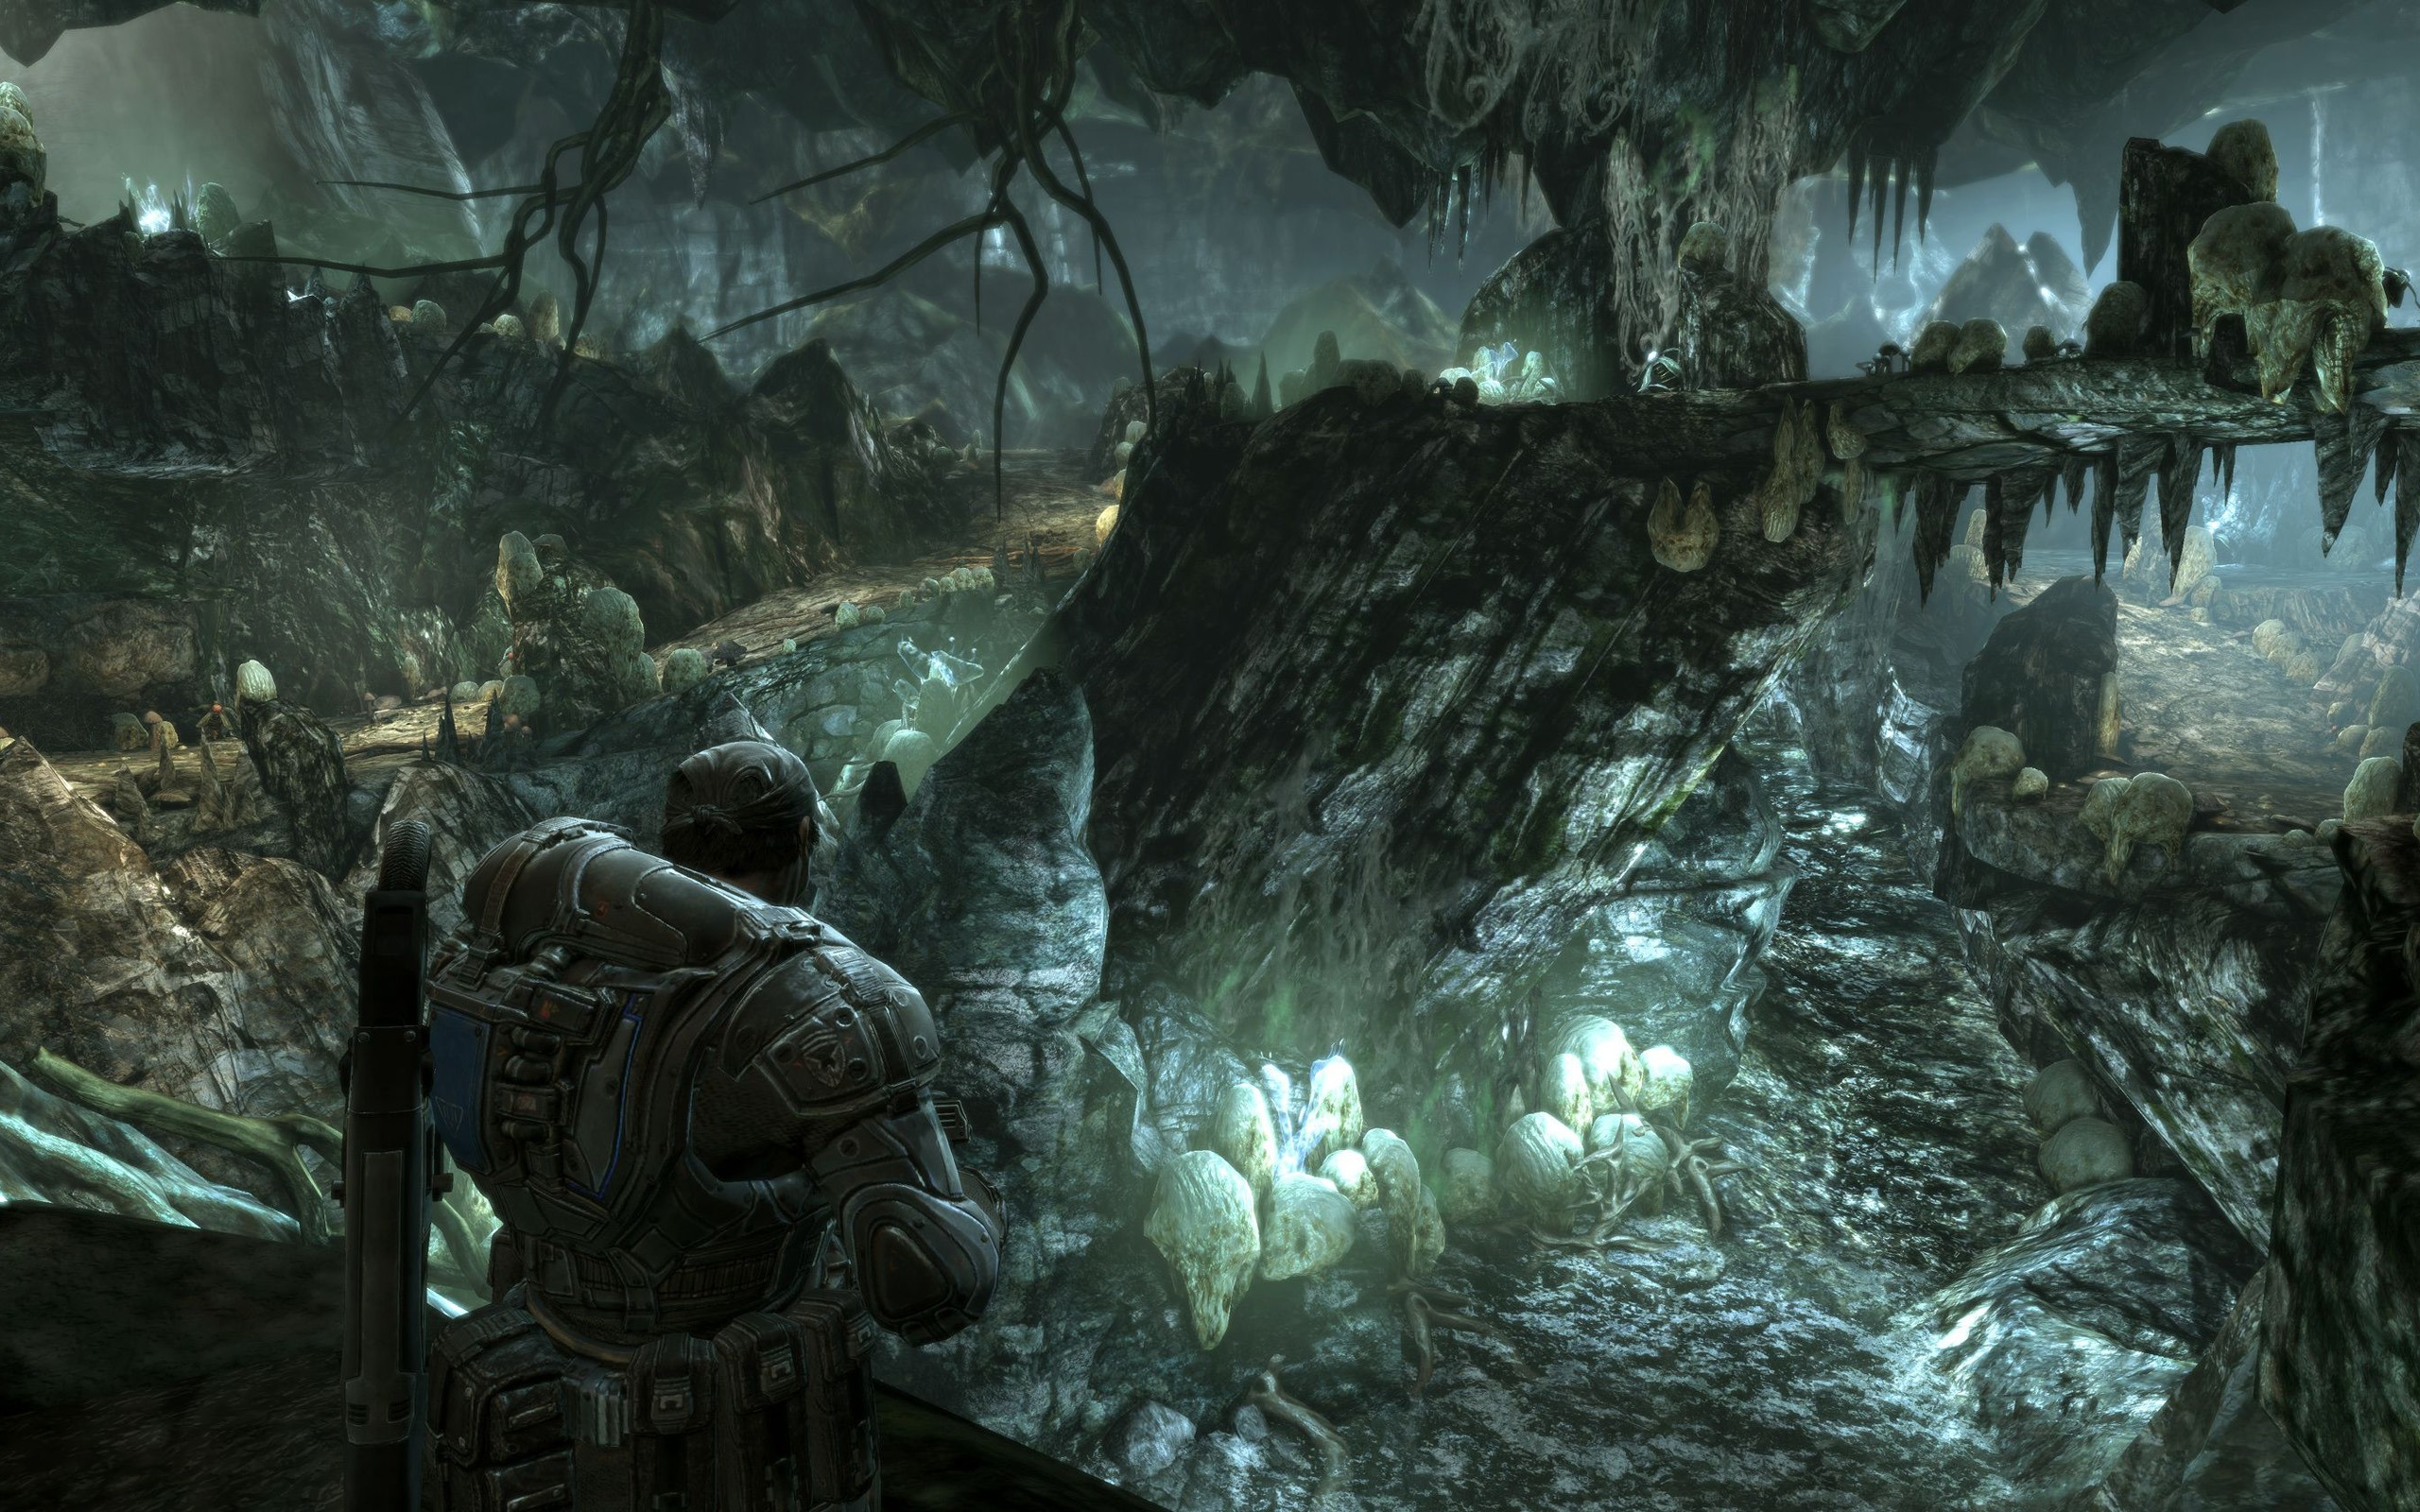 gears of war 2 full hd wallpaper and background image | 2560x1600